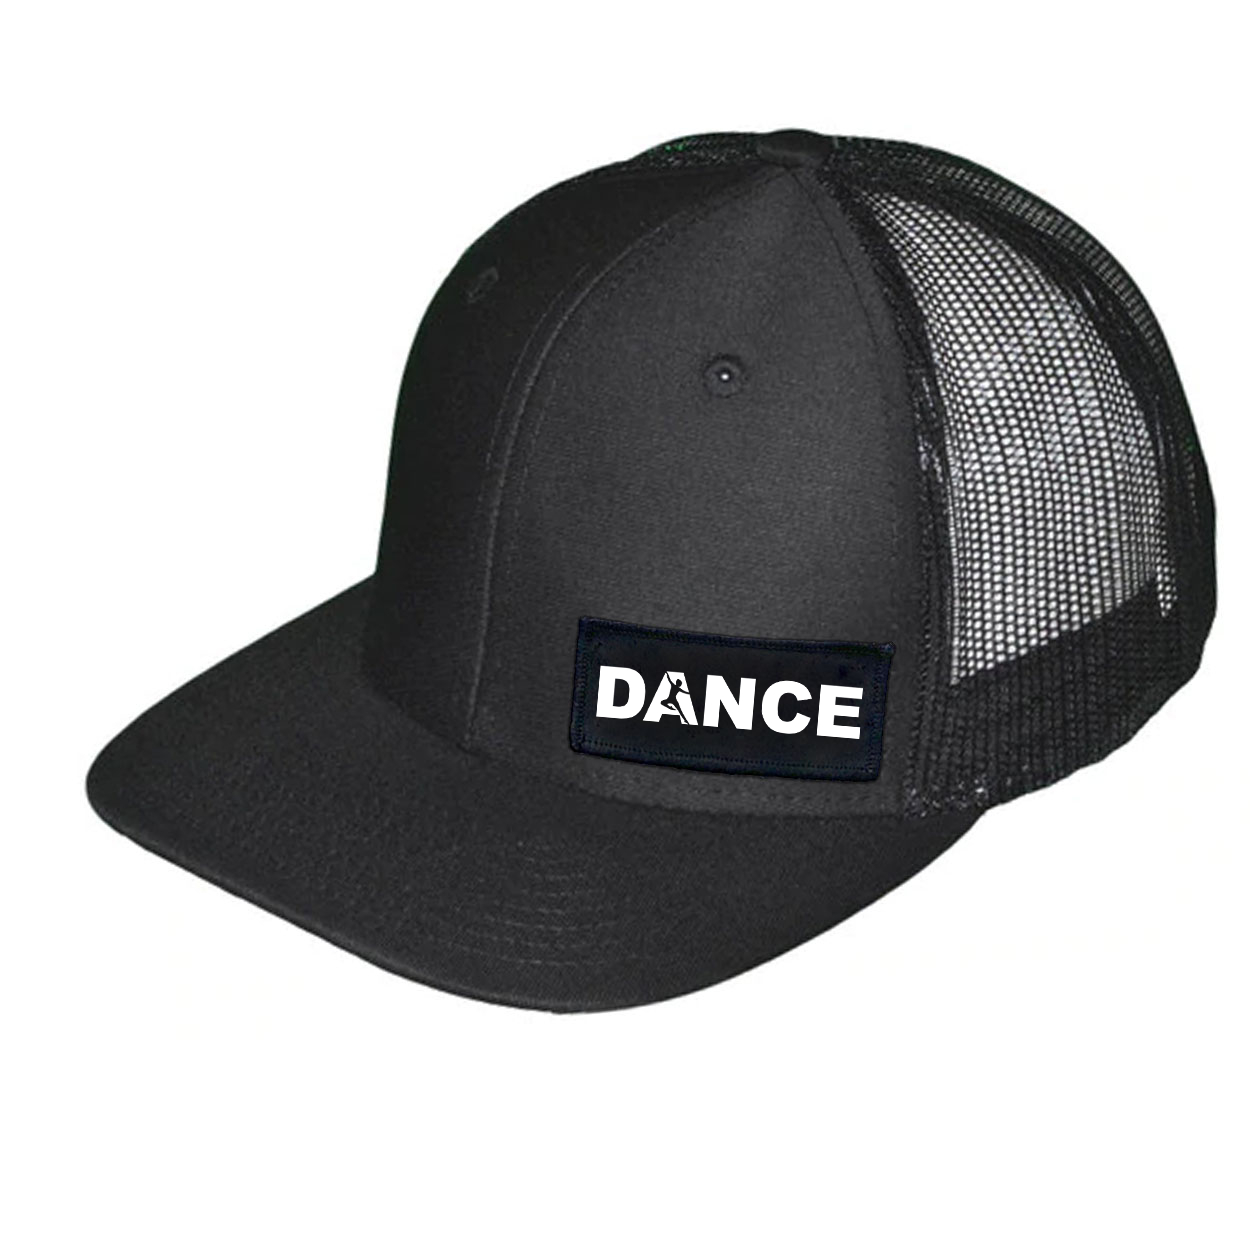 Dance Silhouette Logo Night Out Woven Patch Snapback Trucker Hat Black (White Logo)